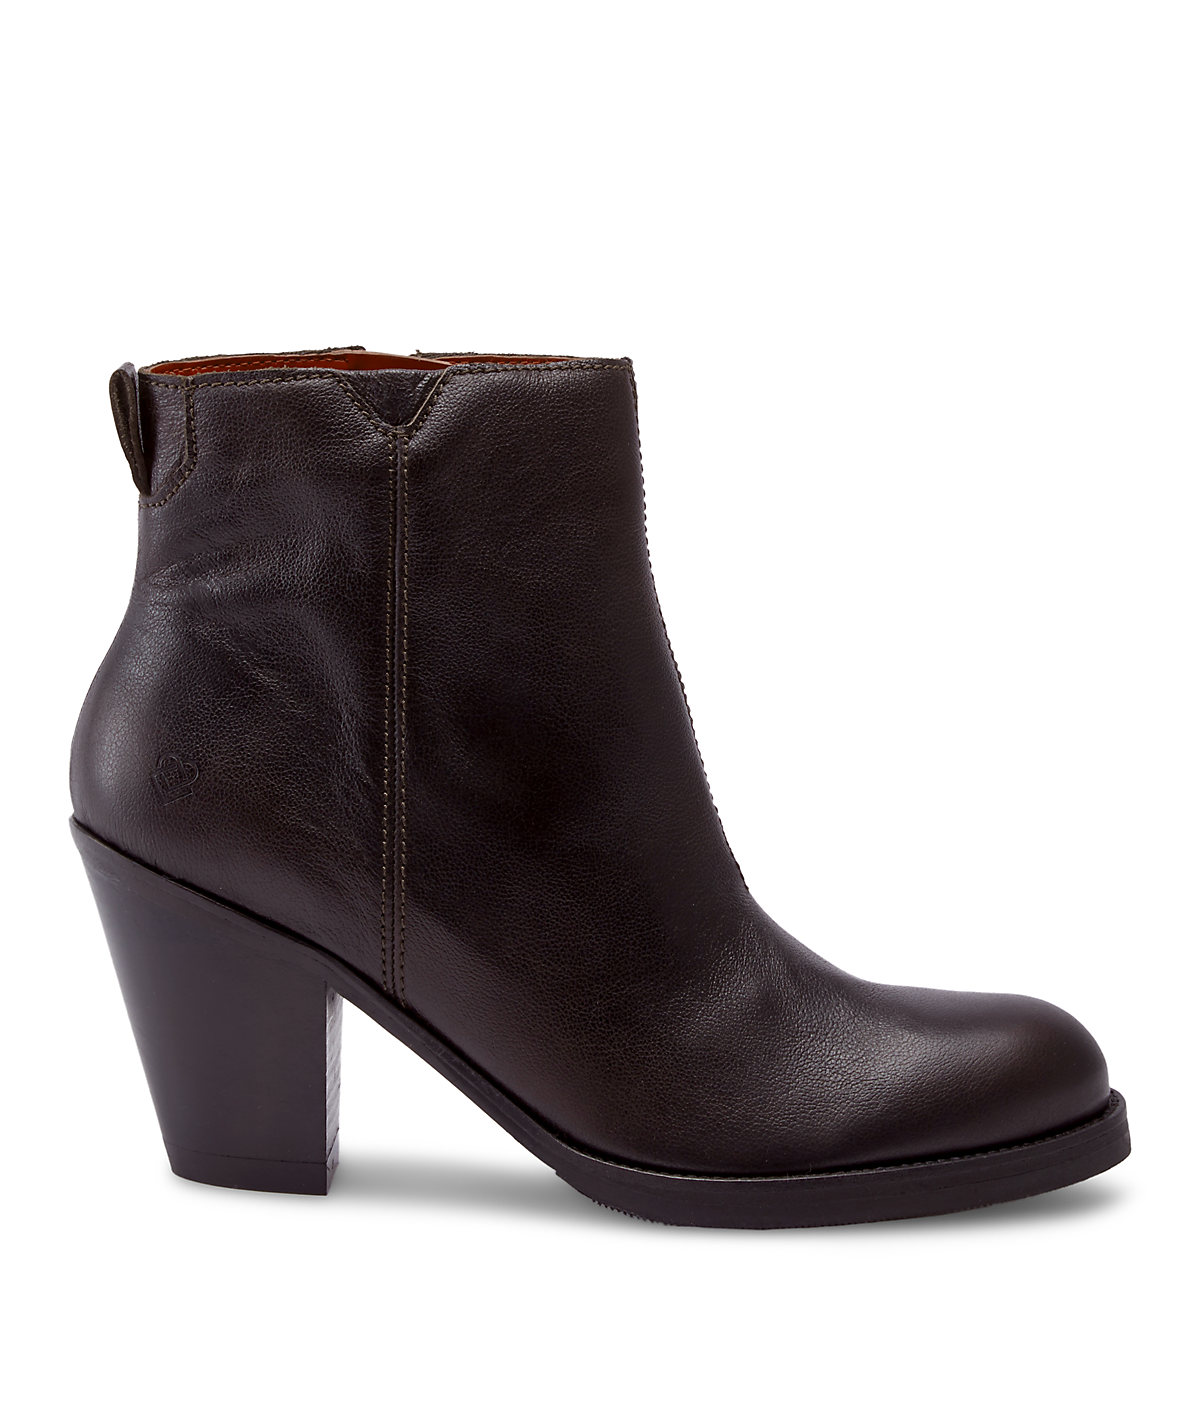 Boots from liebeskind